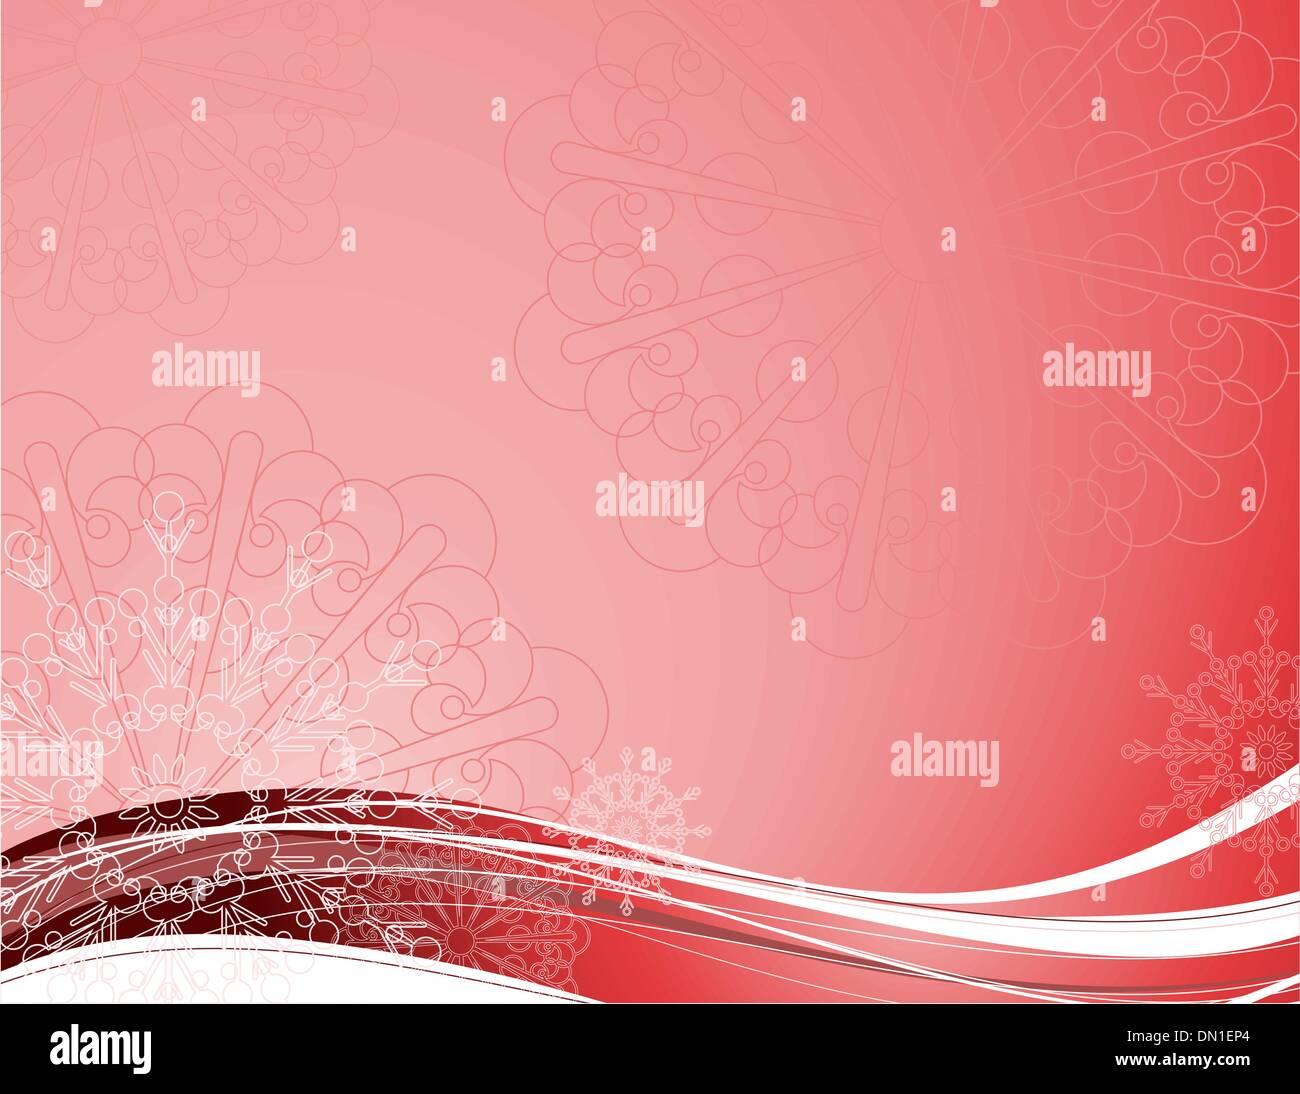 New Year's background - Stock Image